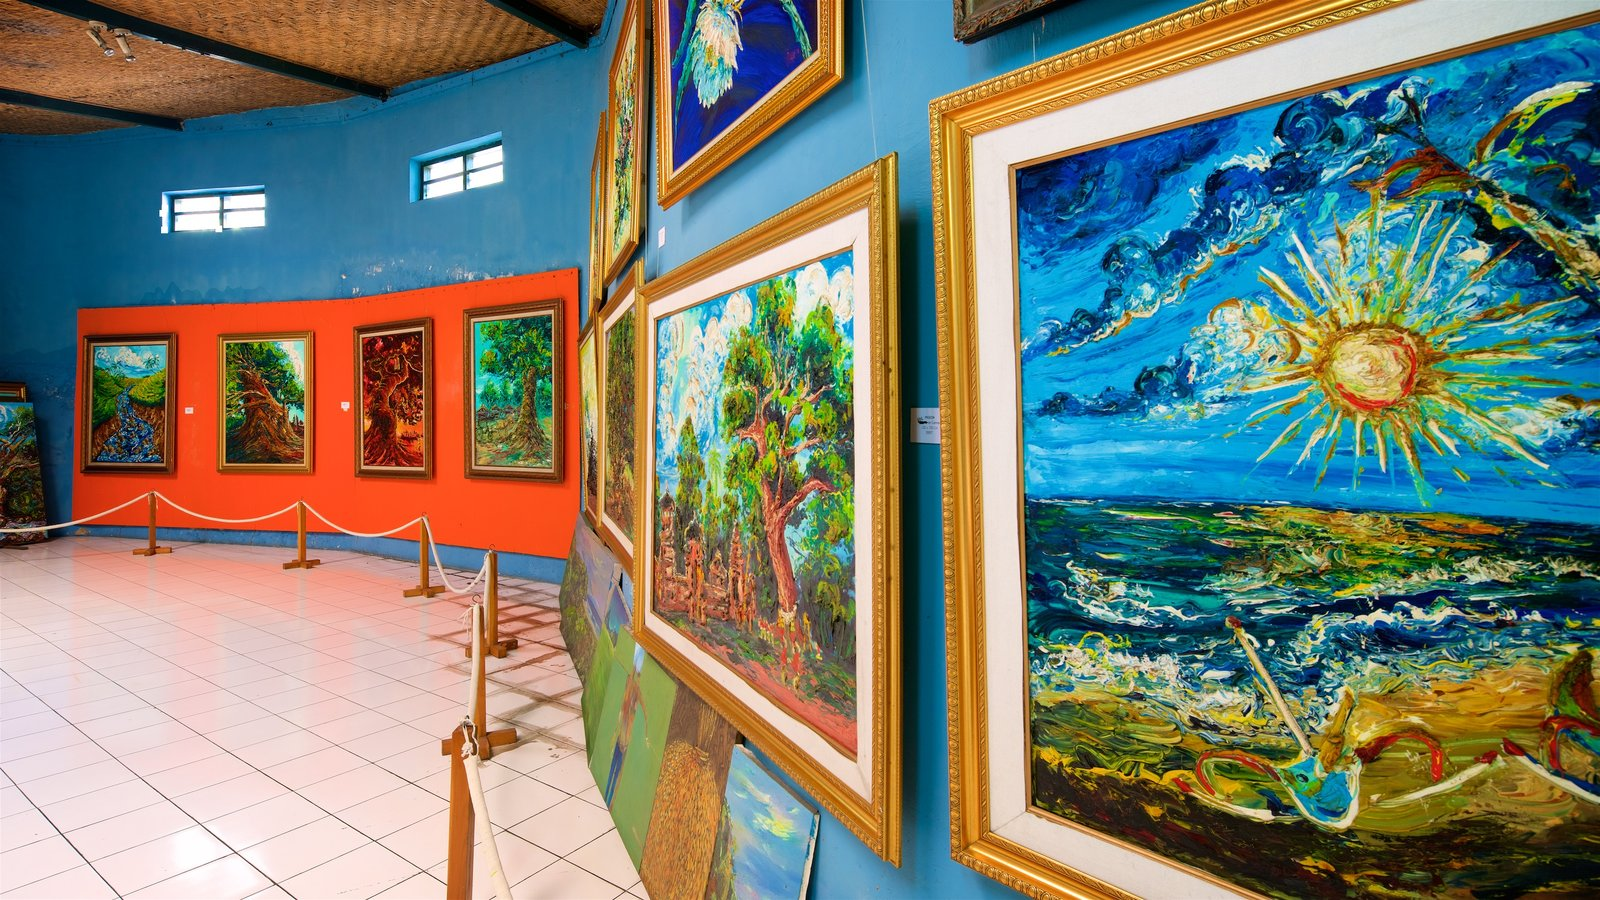 Art Pictures View Images Affandi Museum Showing Interior Views Kab